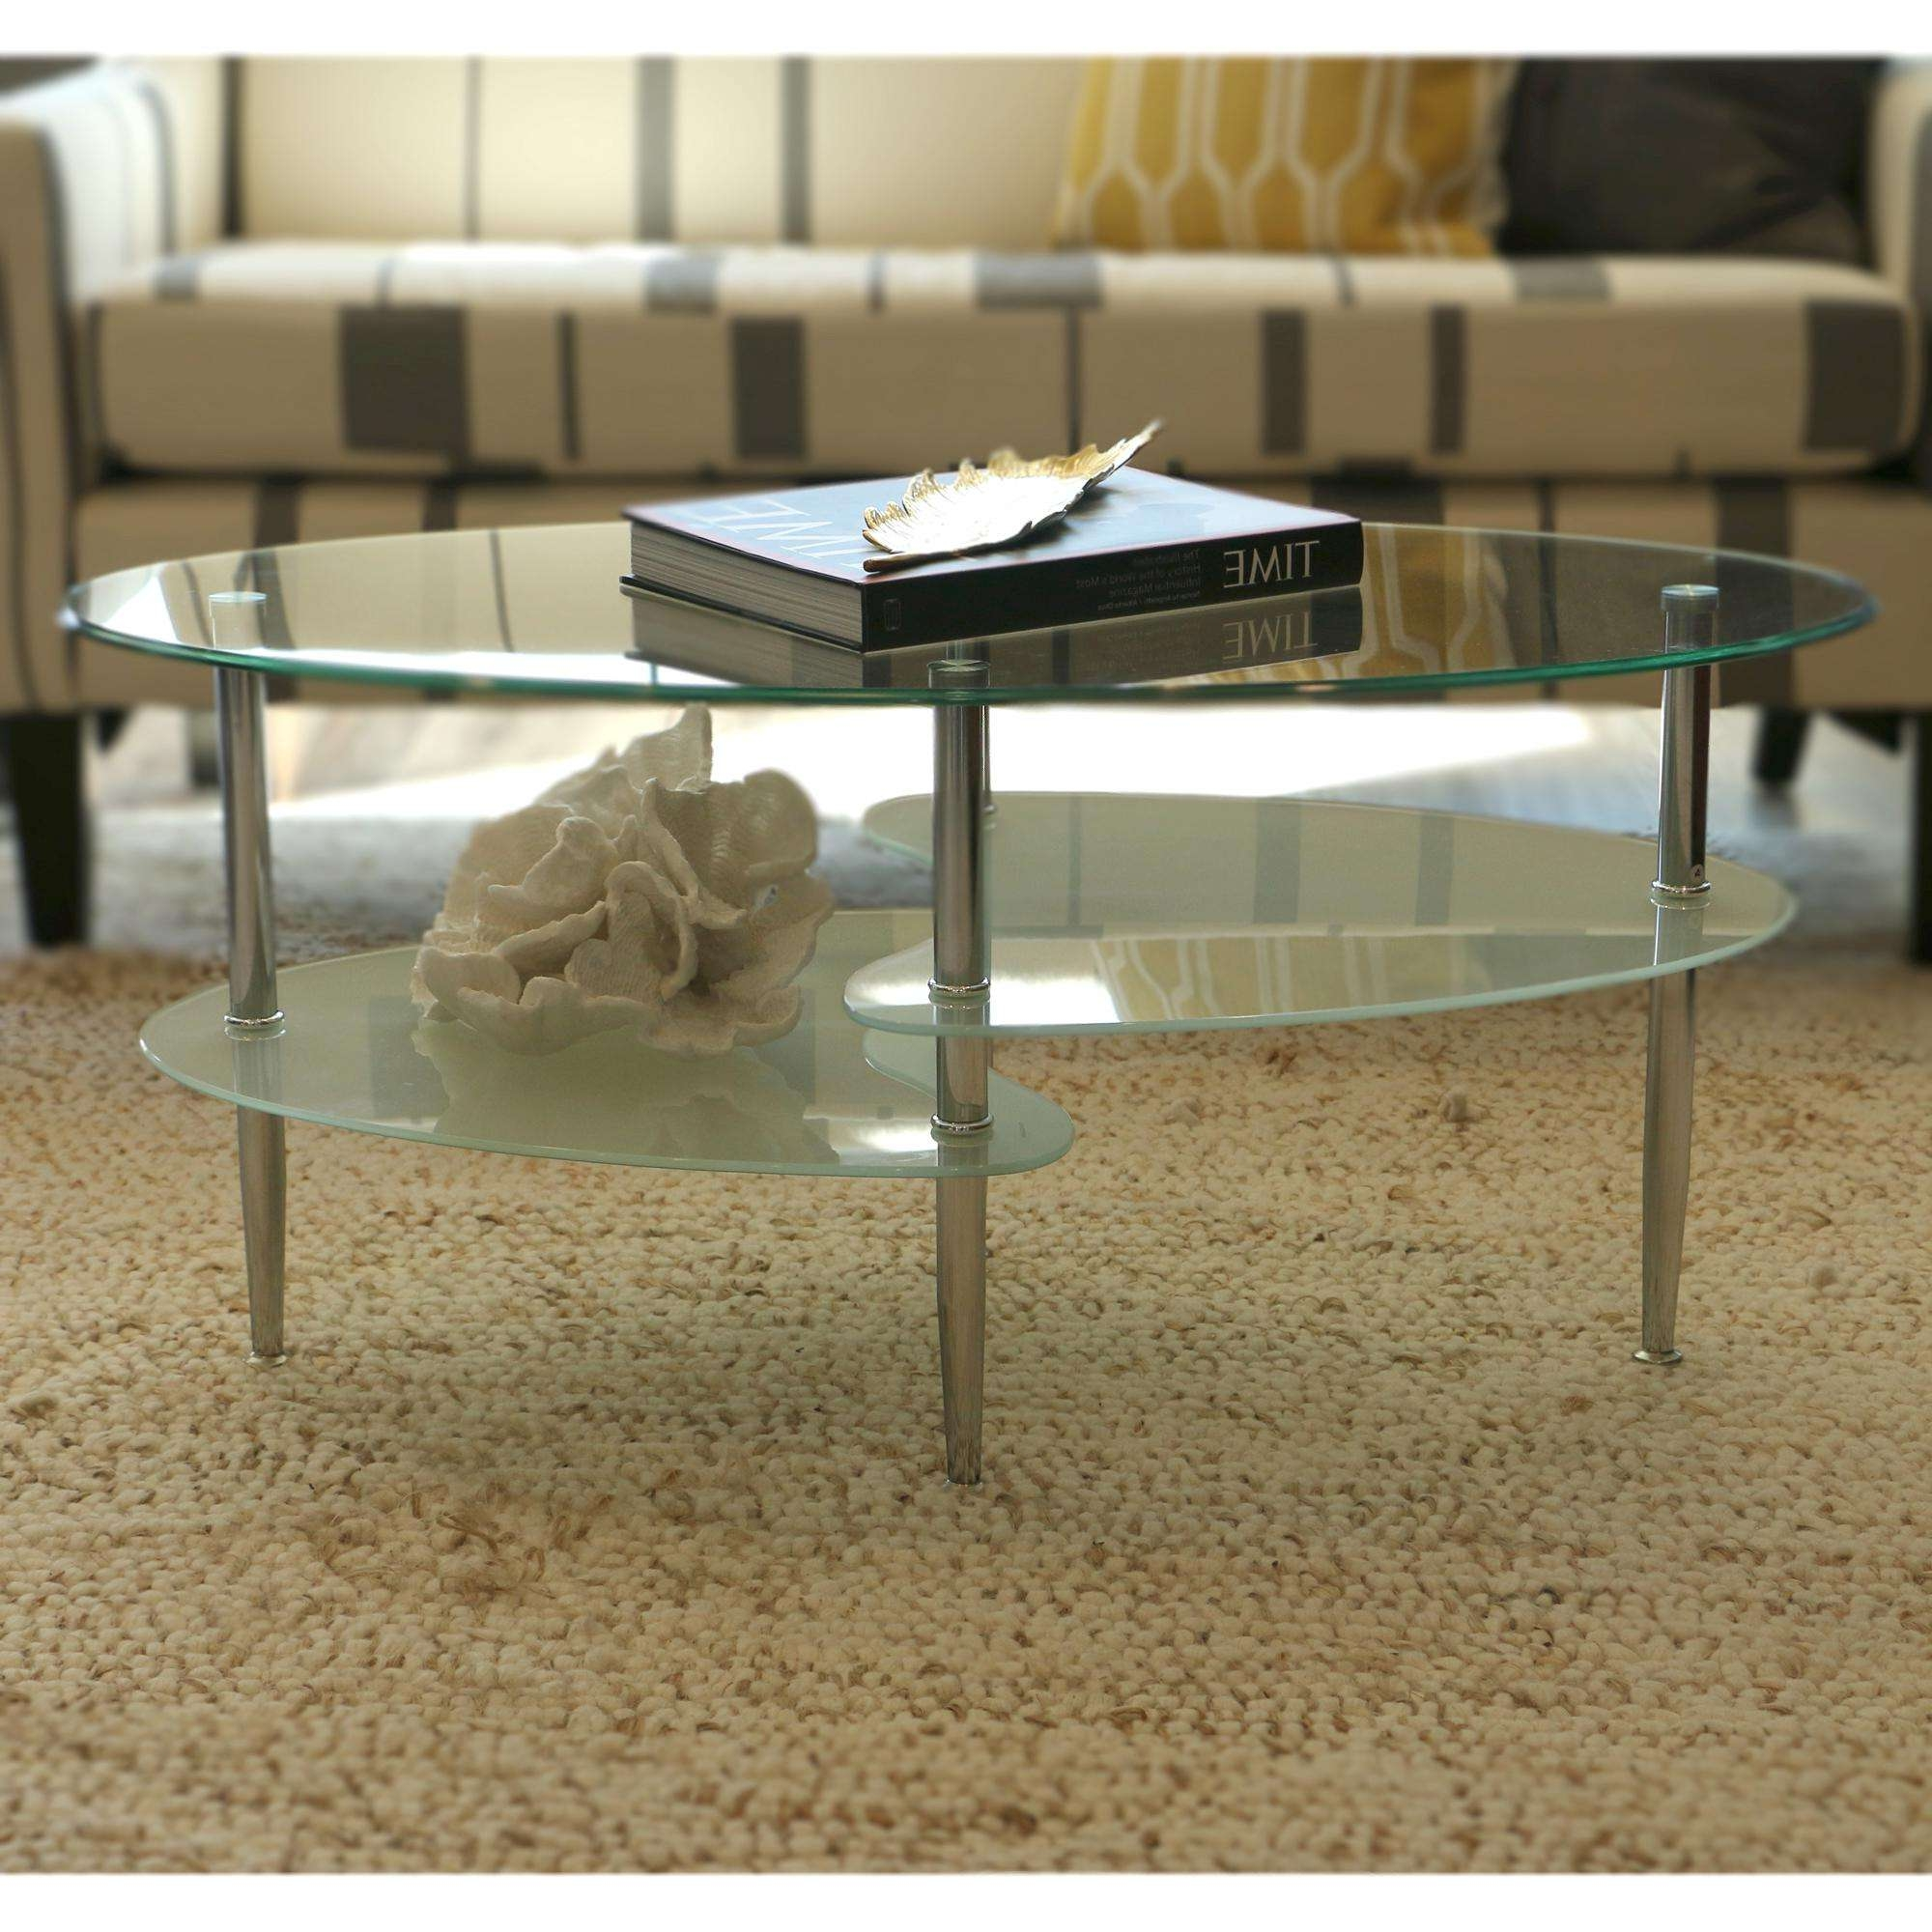 Coffee Tables : Furniture Brass Frame Coffee Table With Oval Glass With Regard To Most Recently Released Oval Glass Coffee Tables (View 5 of 20)